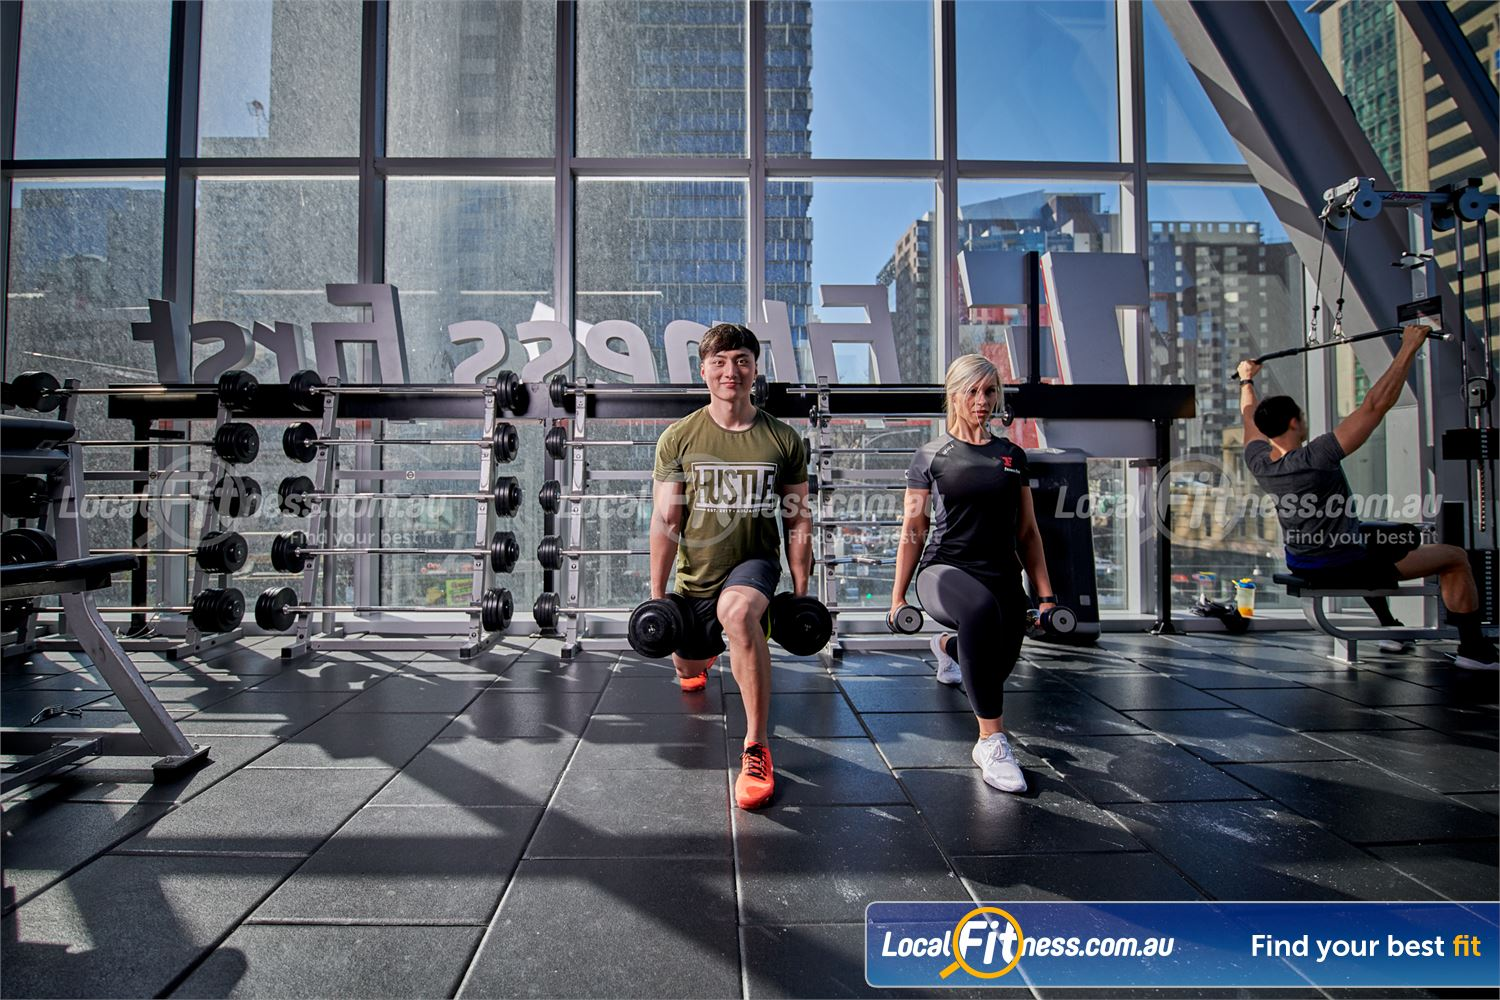 Fitness First QV Platinum Near South Melbourne Our Melbourne gym team can show you the benefits of free-weights.